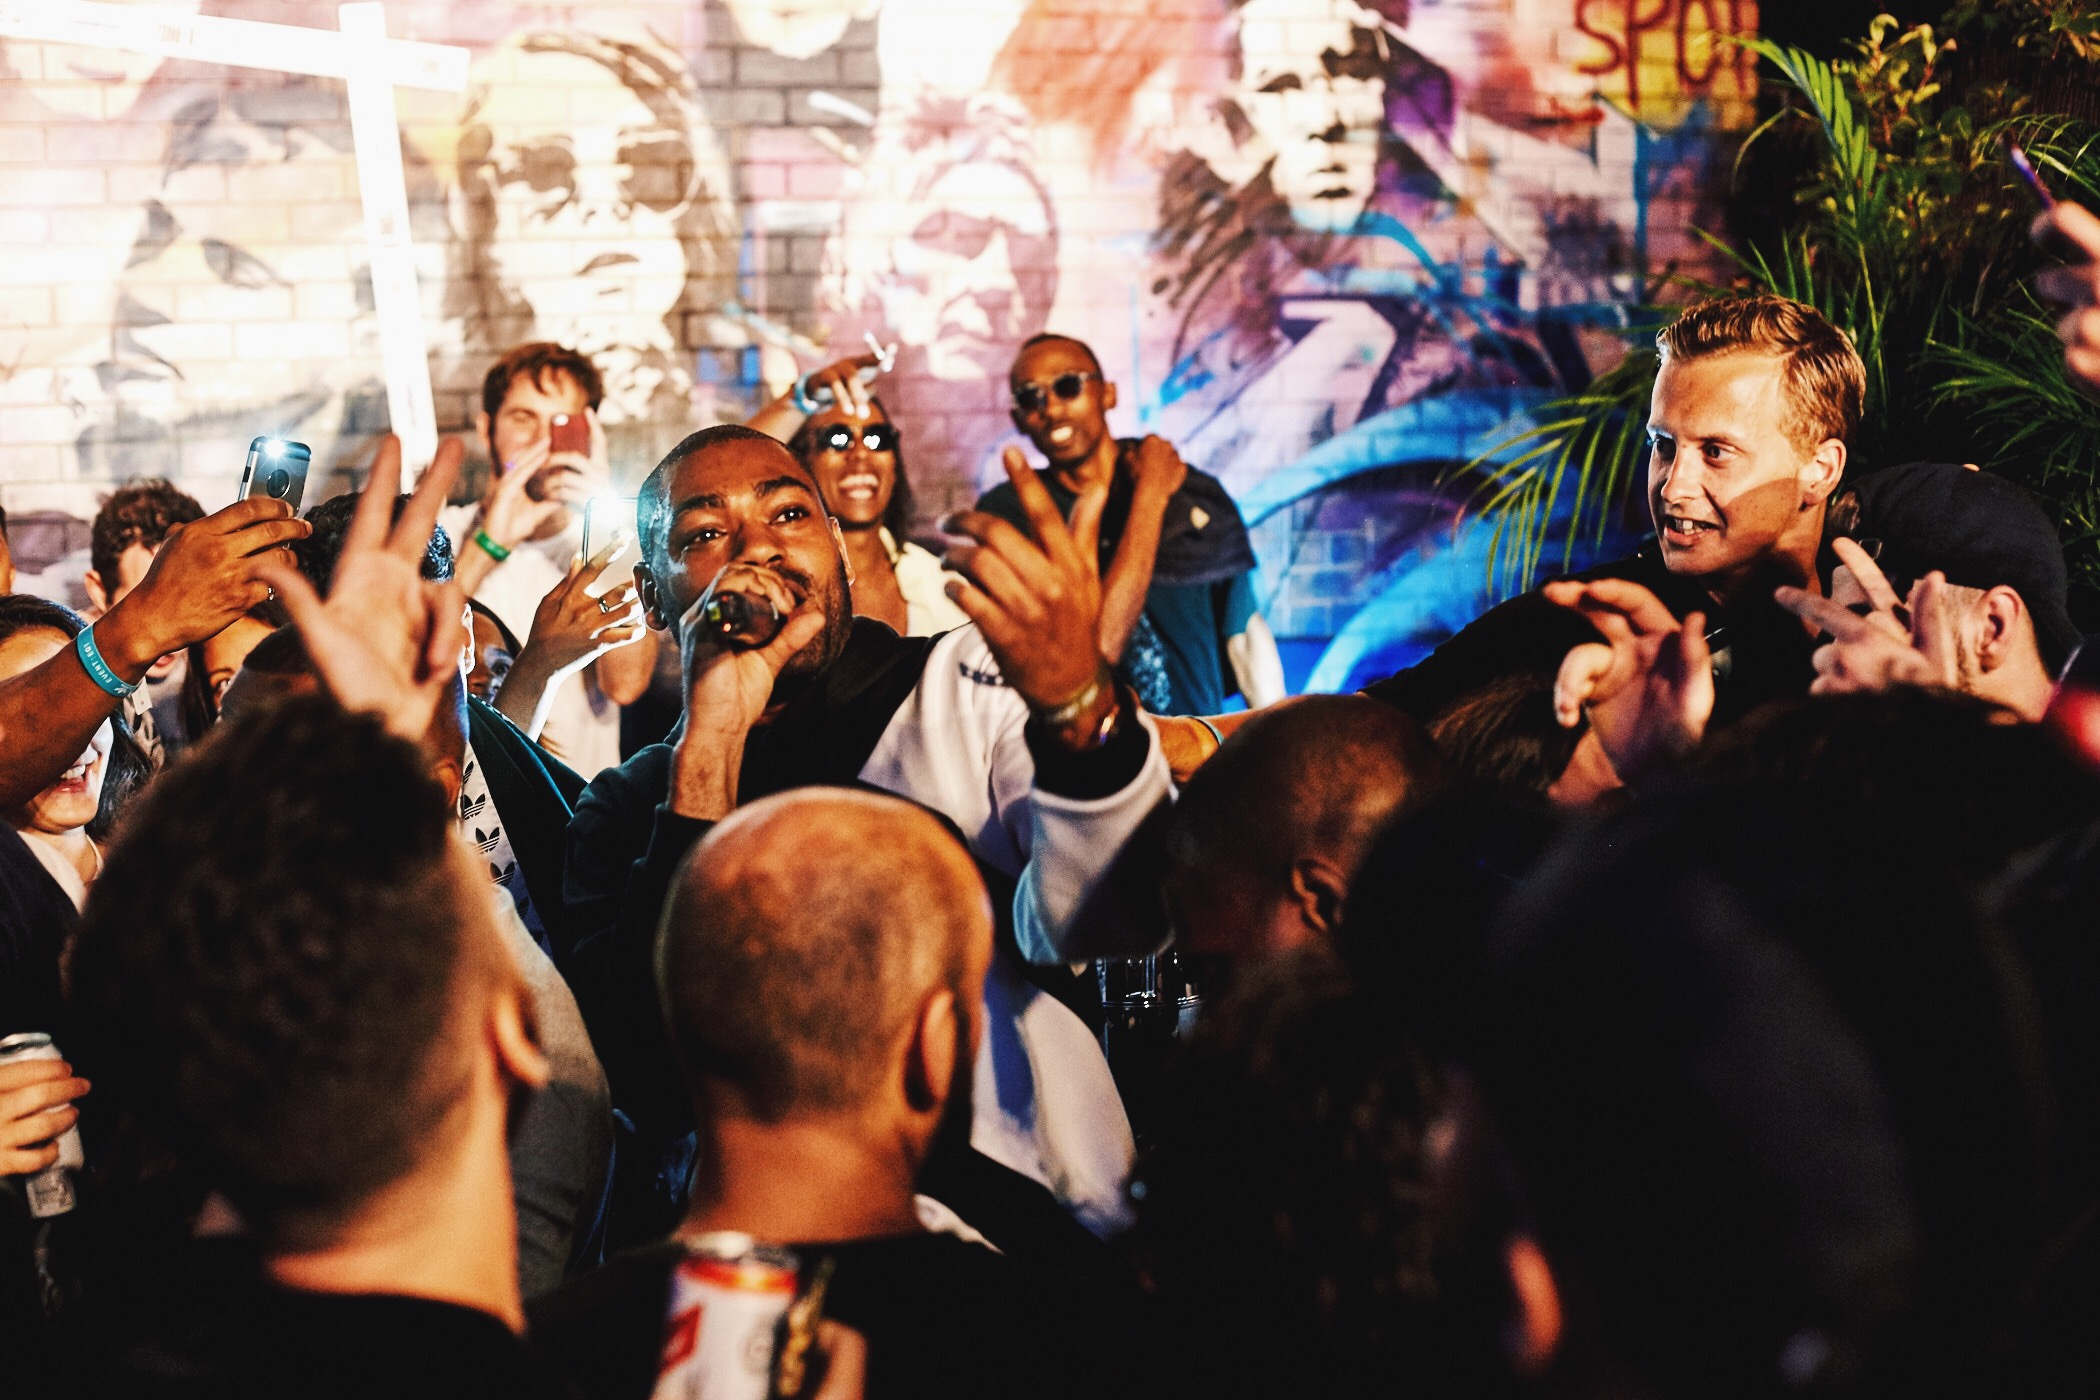 Kano, Belly Squad and Kojo Funds lit up Notting Hill Carnival with adidas Originals and Zone II